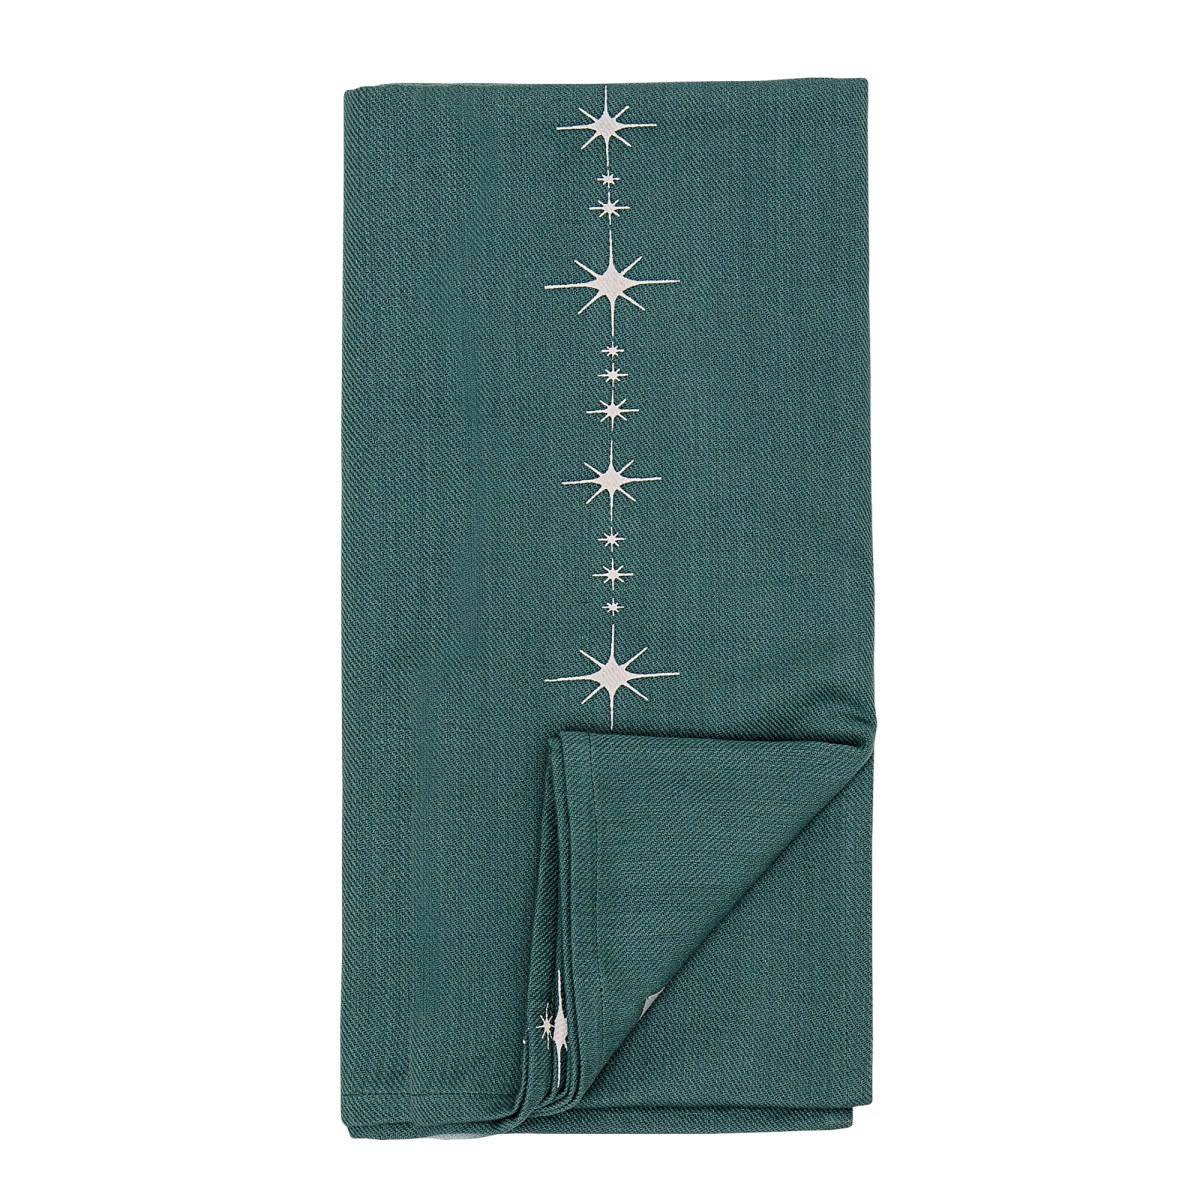 Středový pás Green Table Runner_1